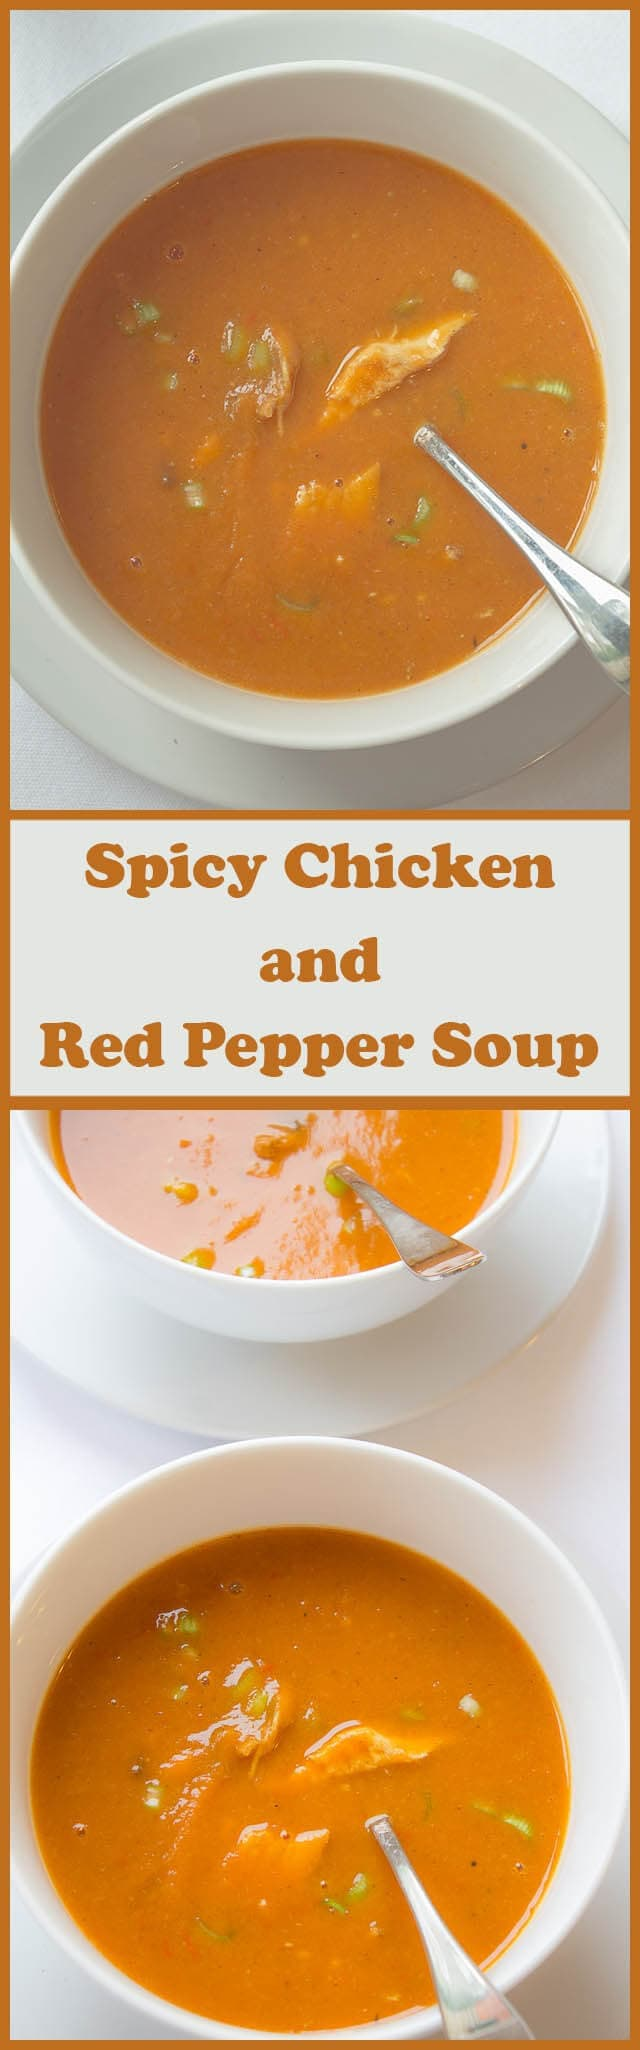 This amazing spicy chicken and red pepper soup gives you all your recommended daily intake of vitamin A and vitamin C in just one bowl of deliciousness! Warming, sweet and of a creamy texture this is a comforting recipe guaranteed to make you smile.